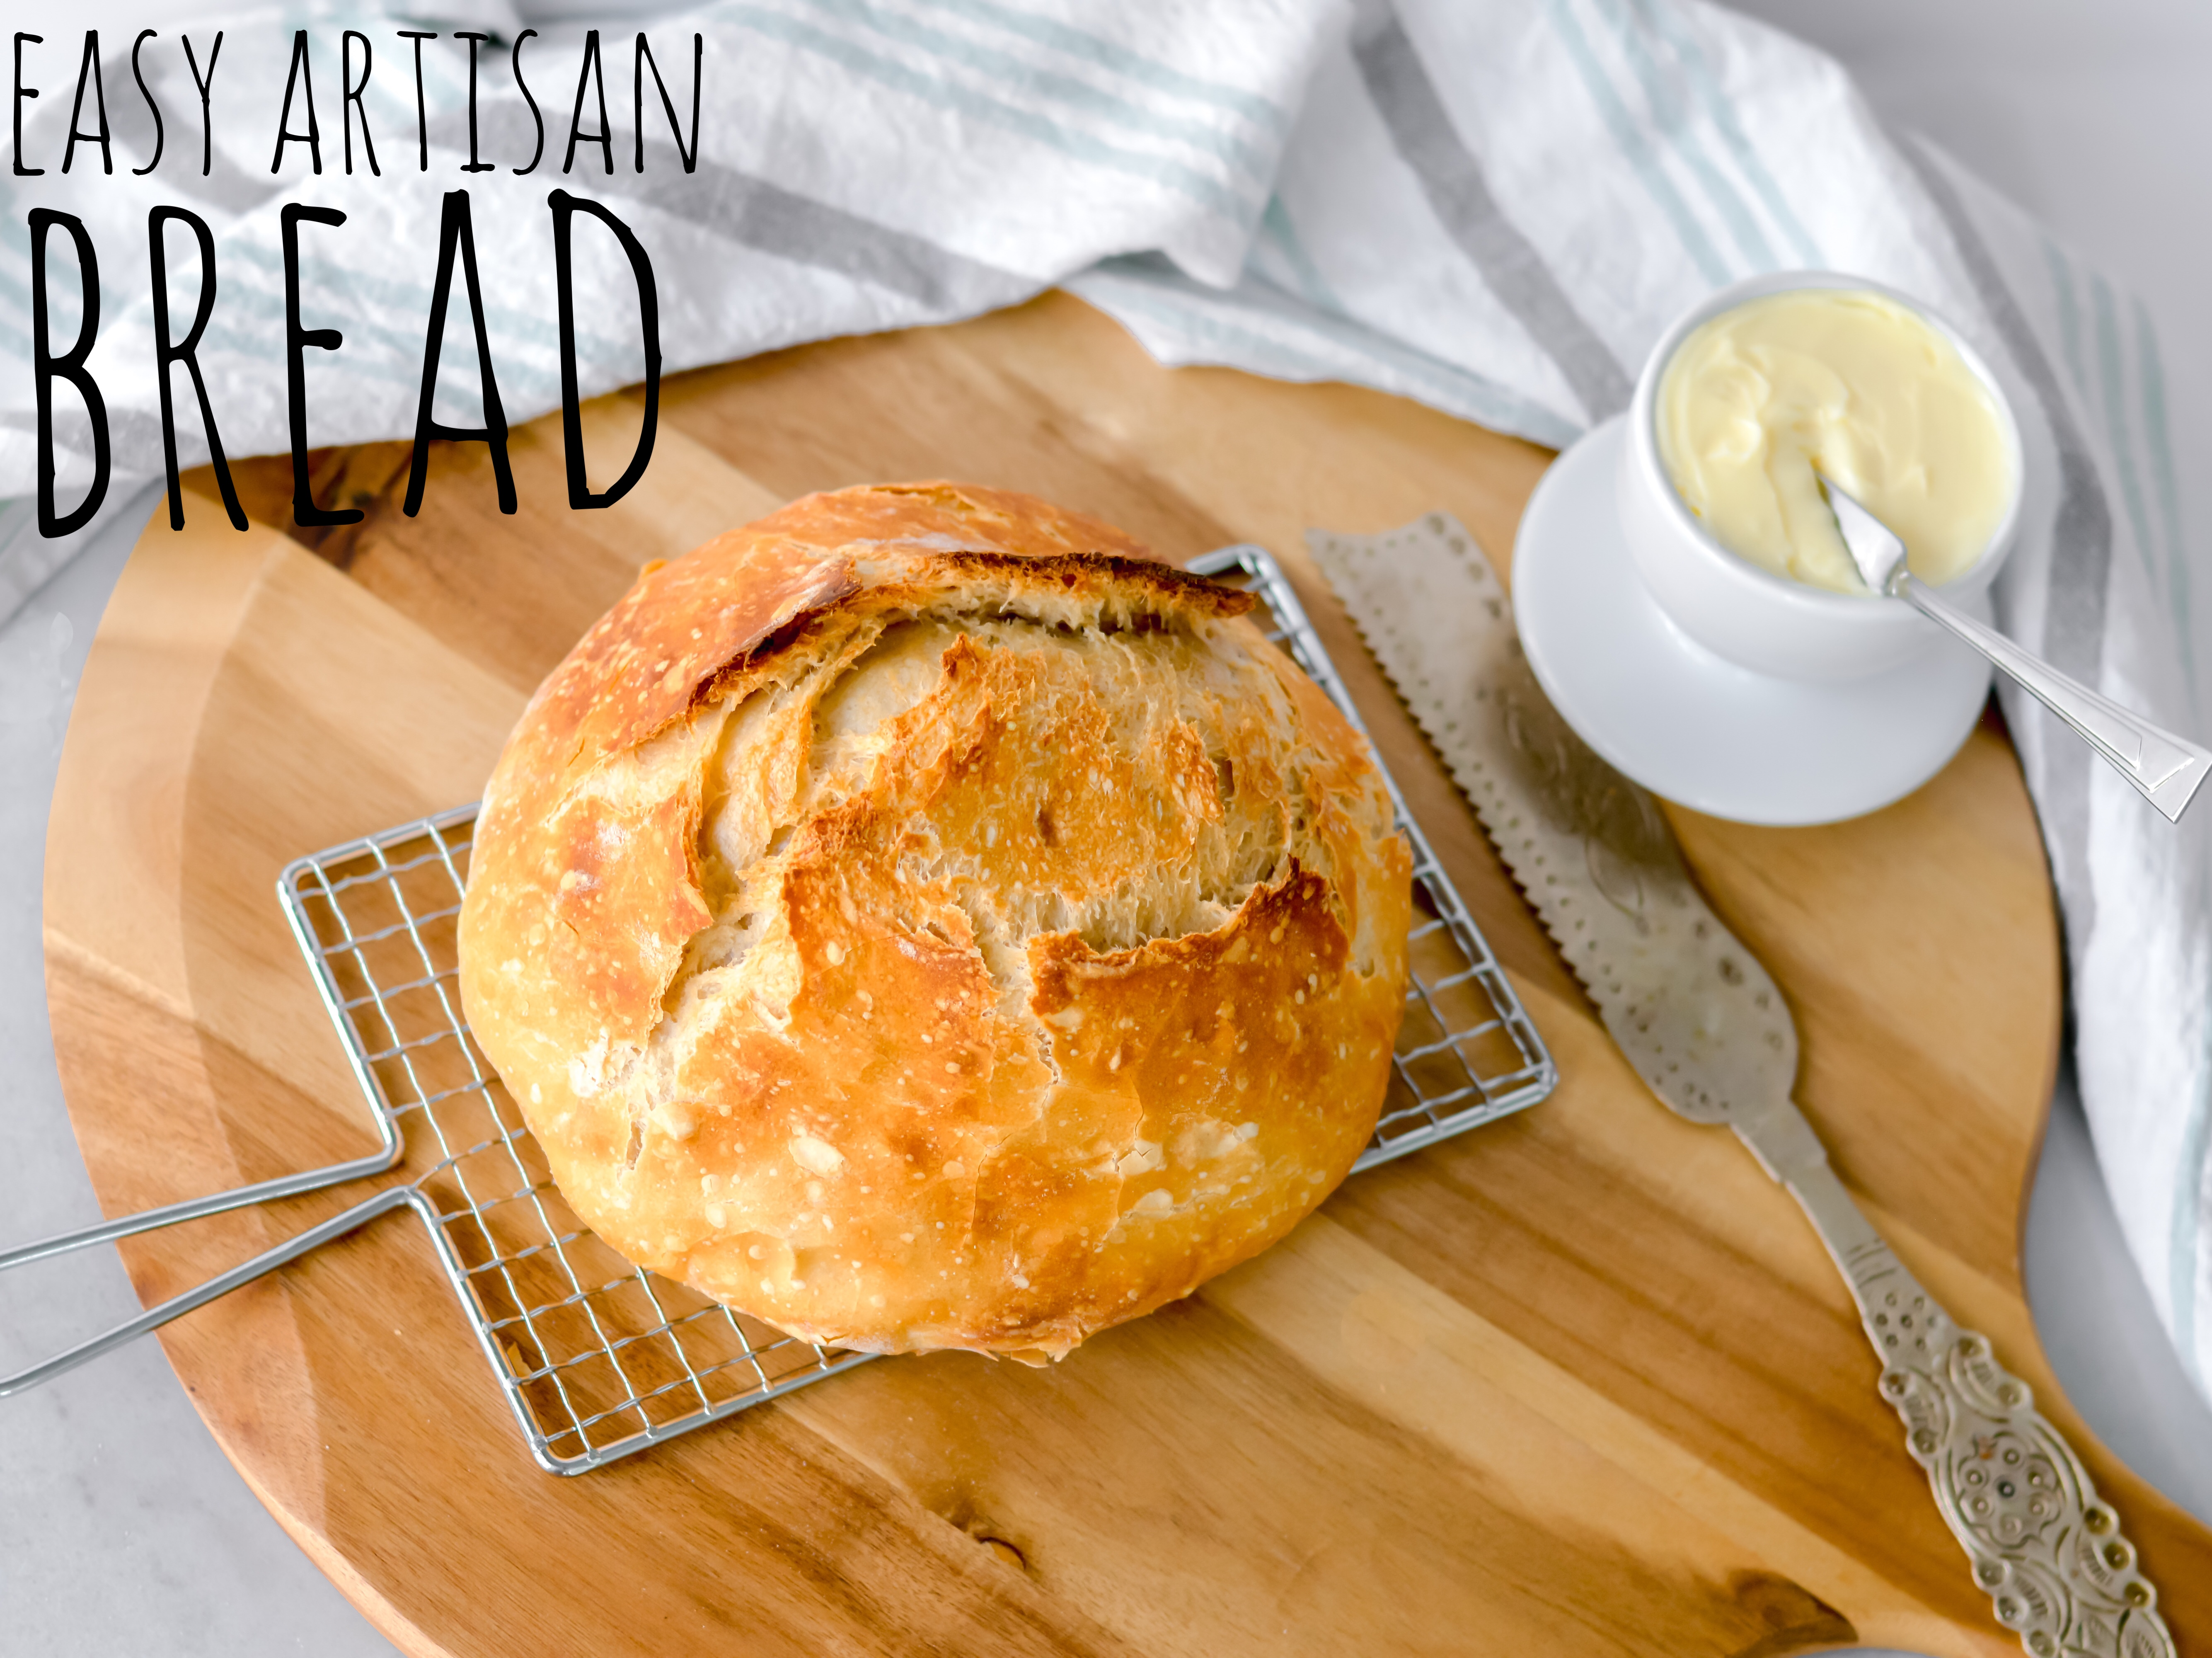 Try our Easy Artisan Bread Recipe